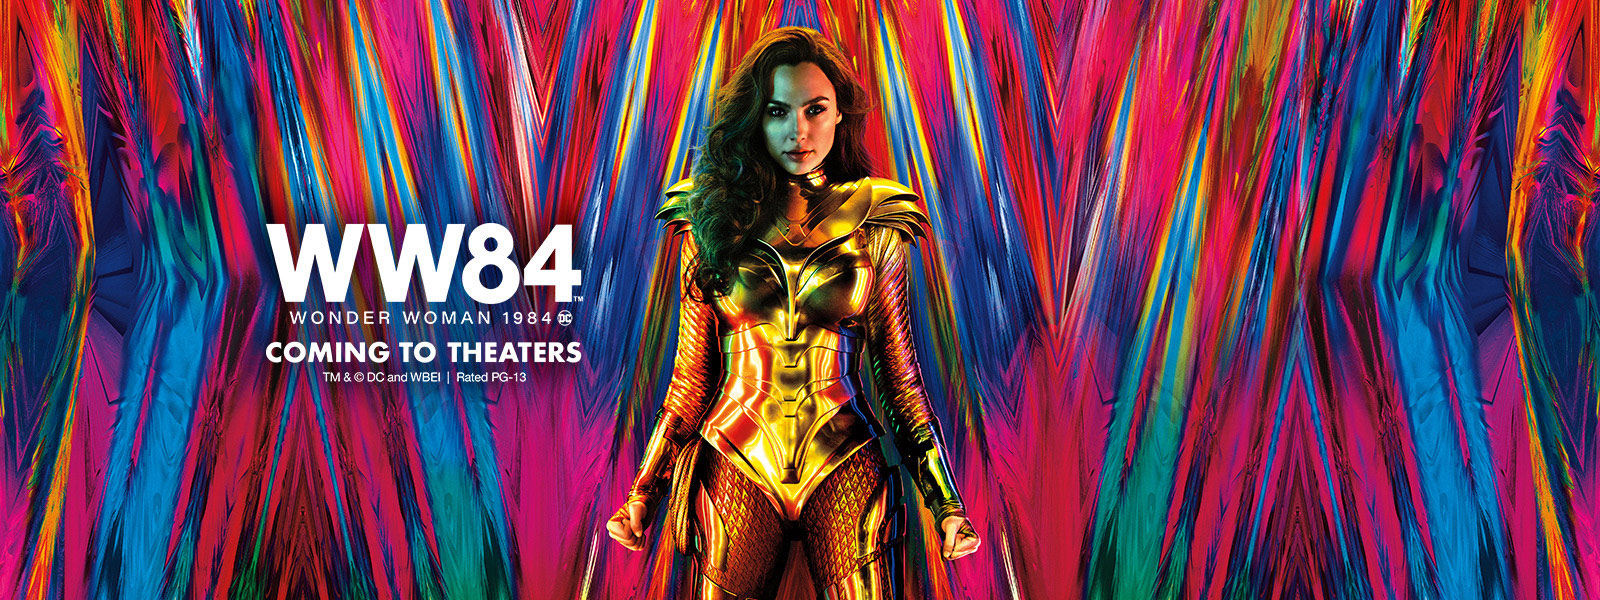 Wonder Woman dressed in a suit of gold standing in front of a colorful background